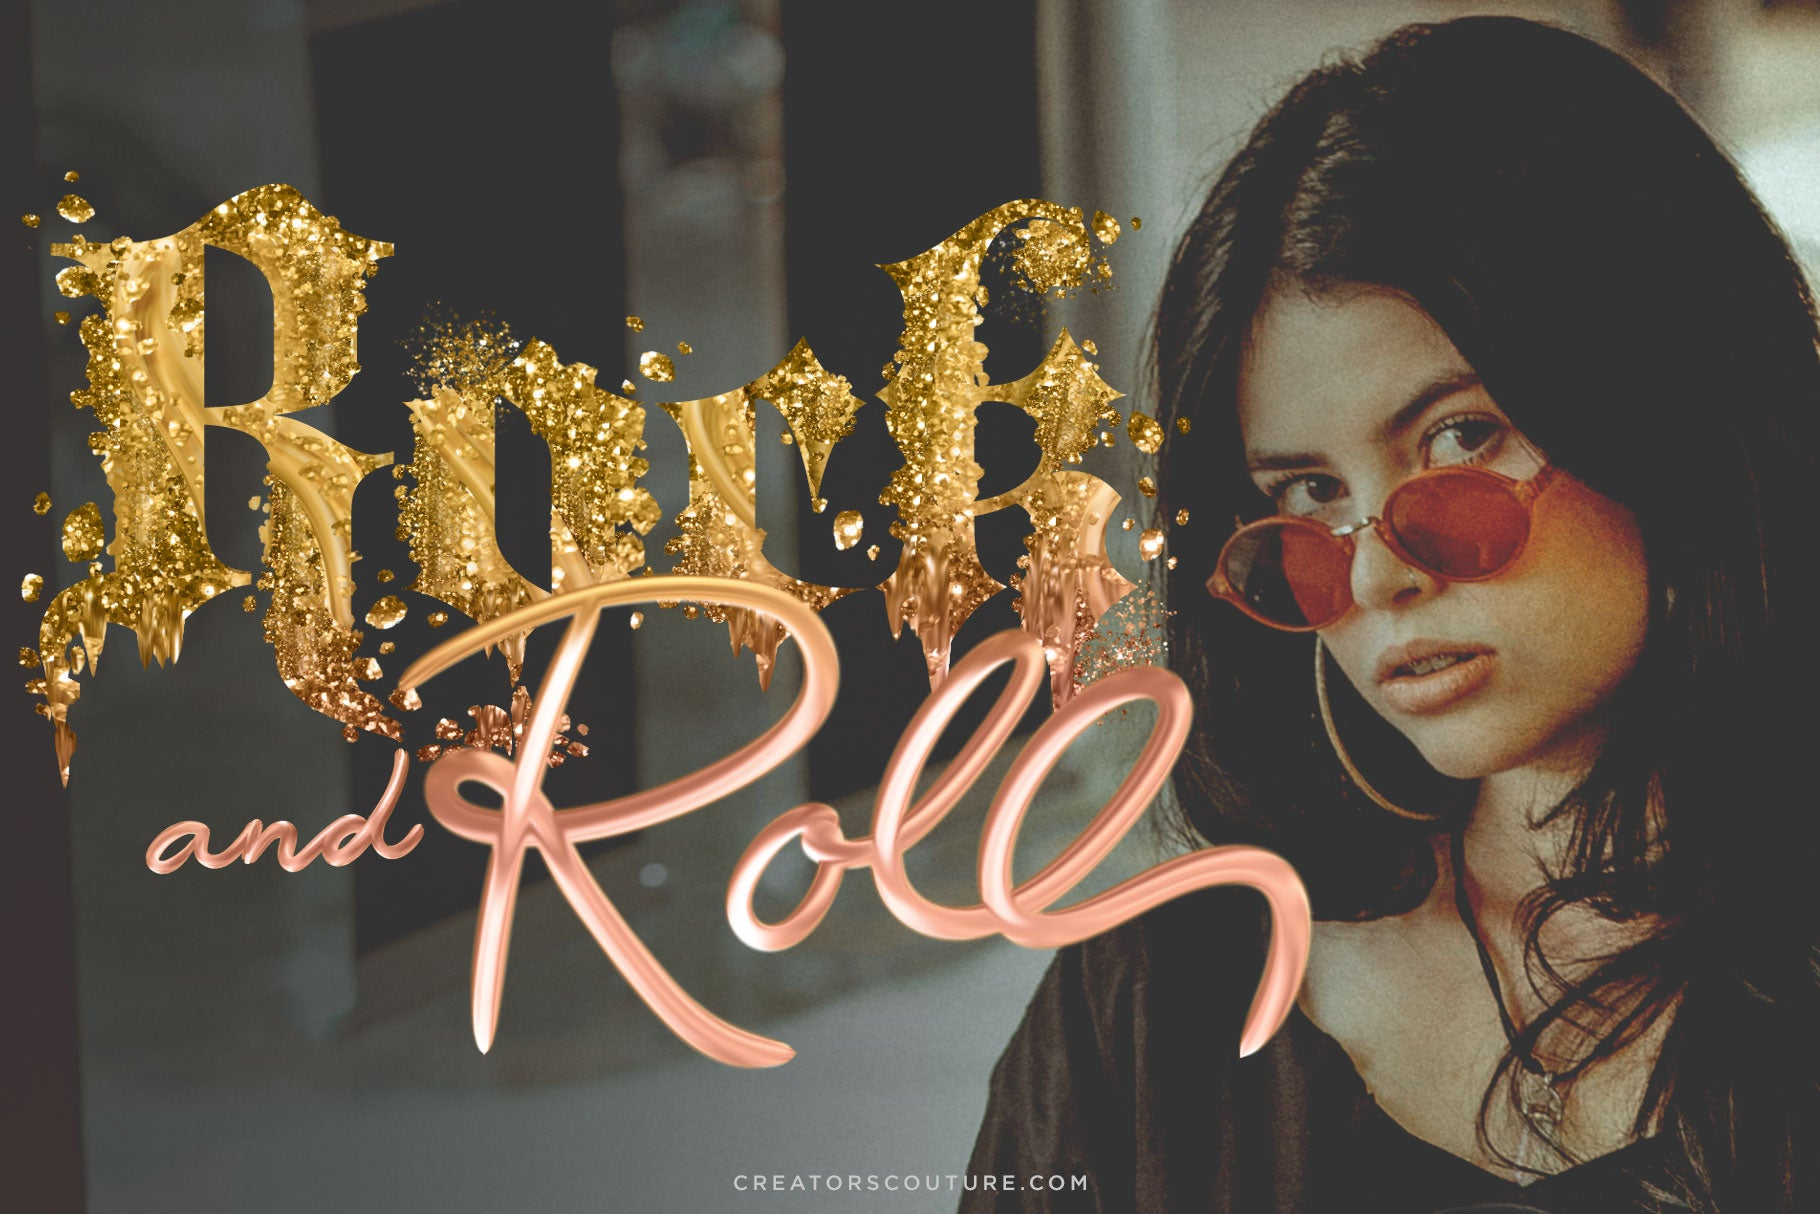 rock and roll gold letters made with photoshop brushes 2